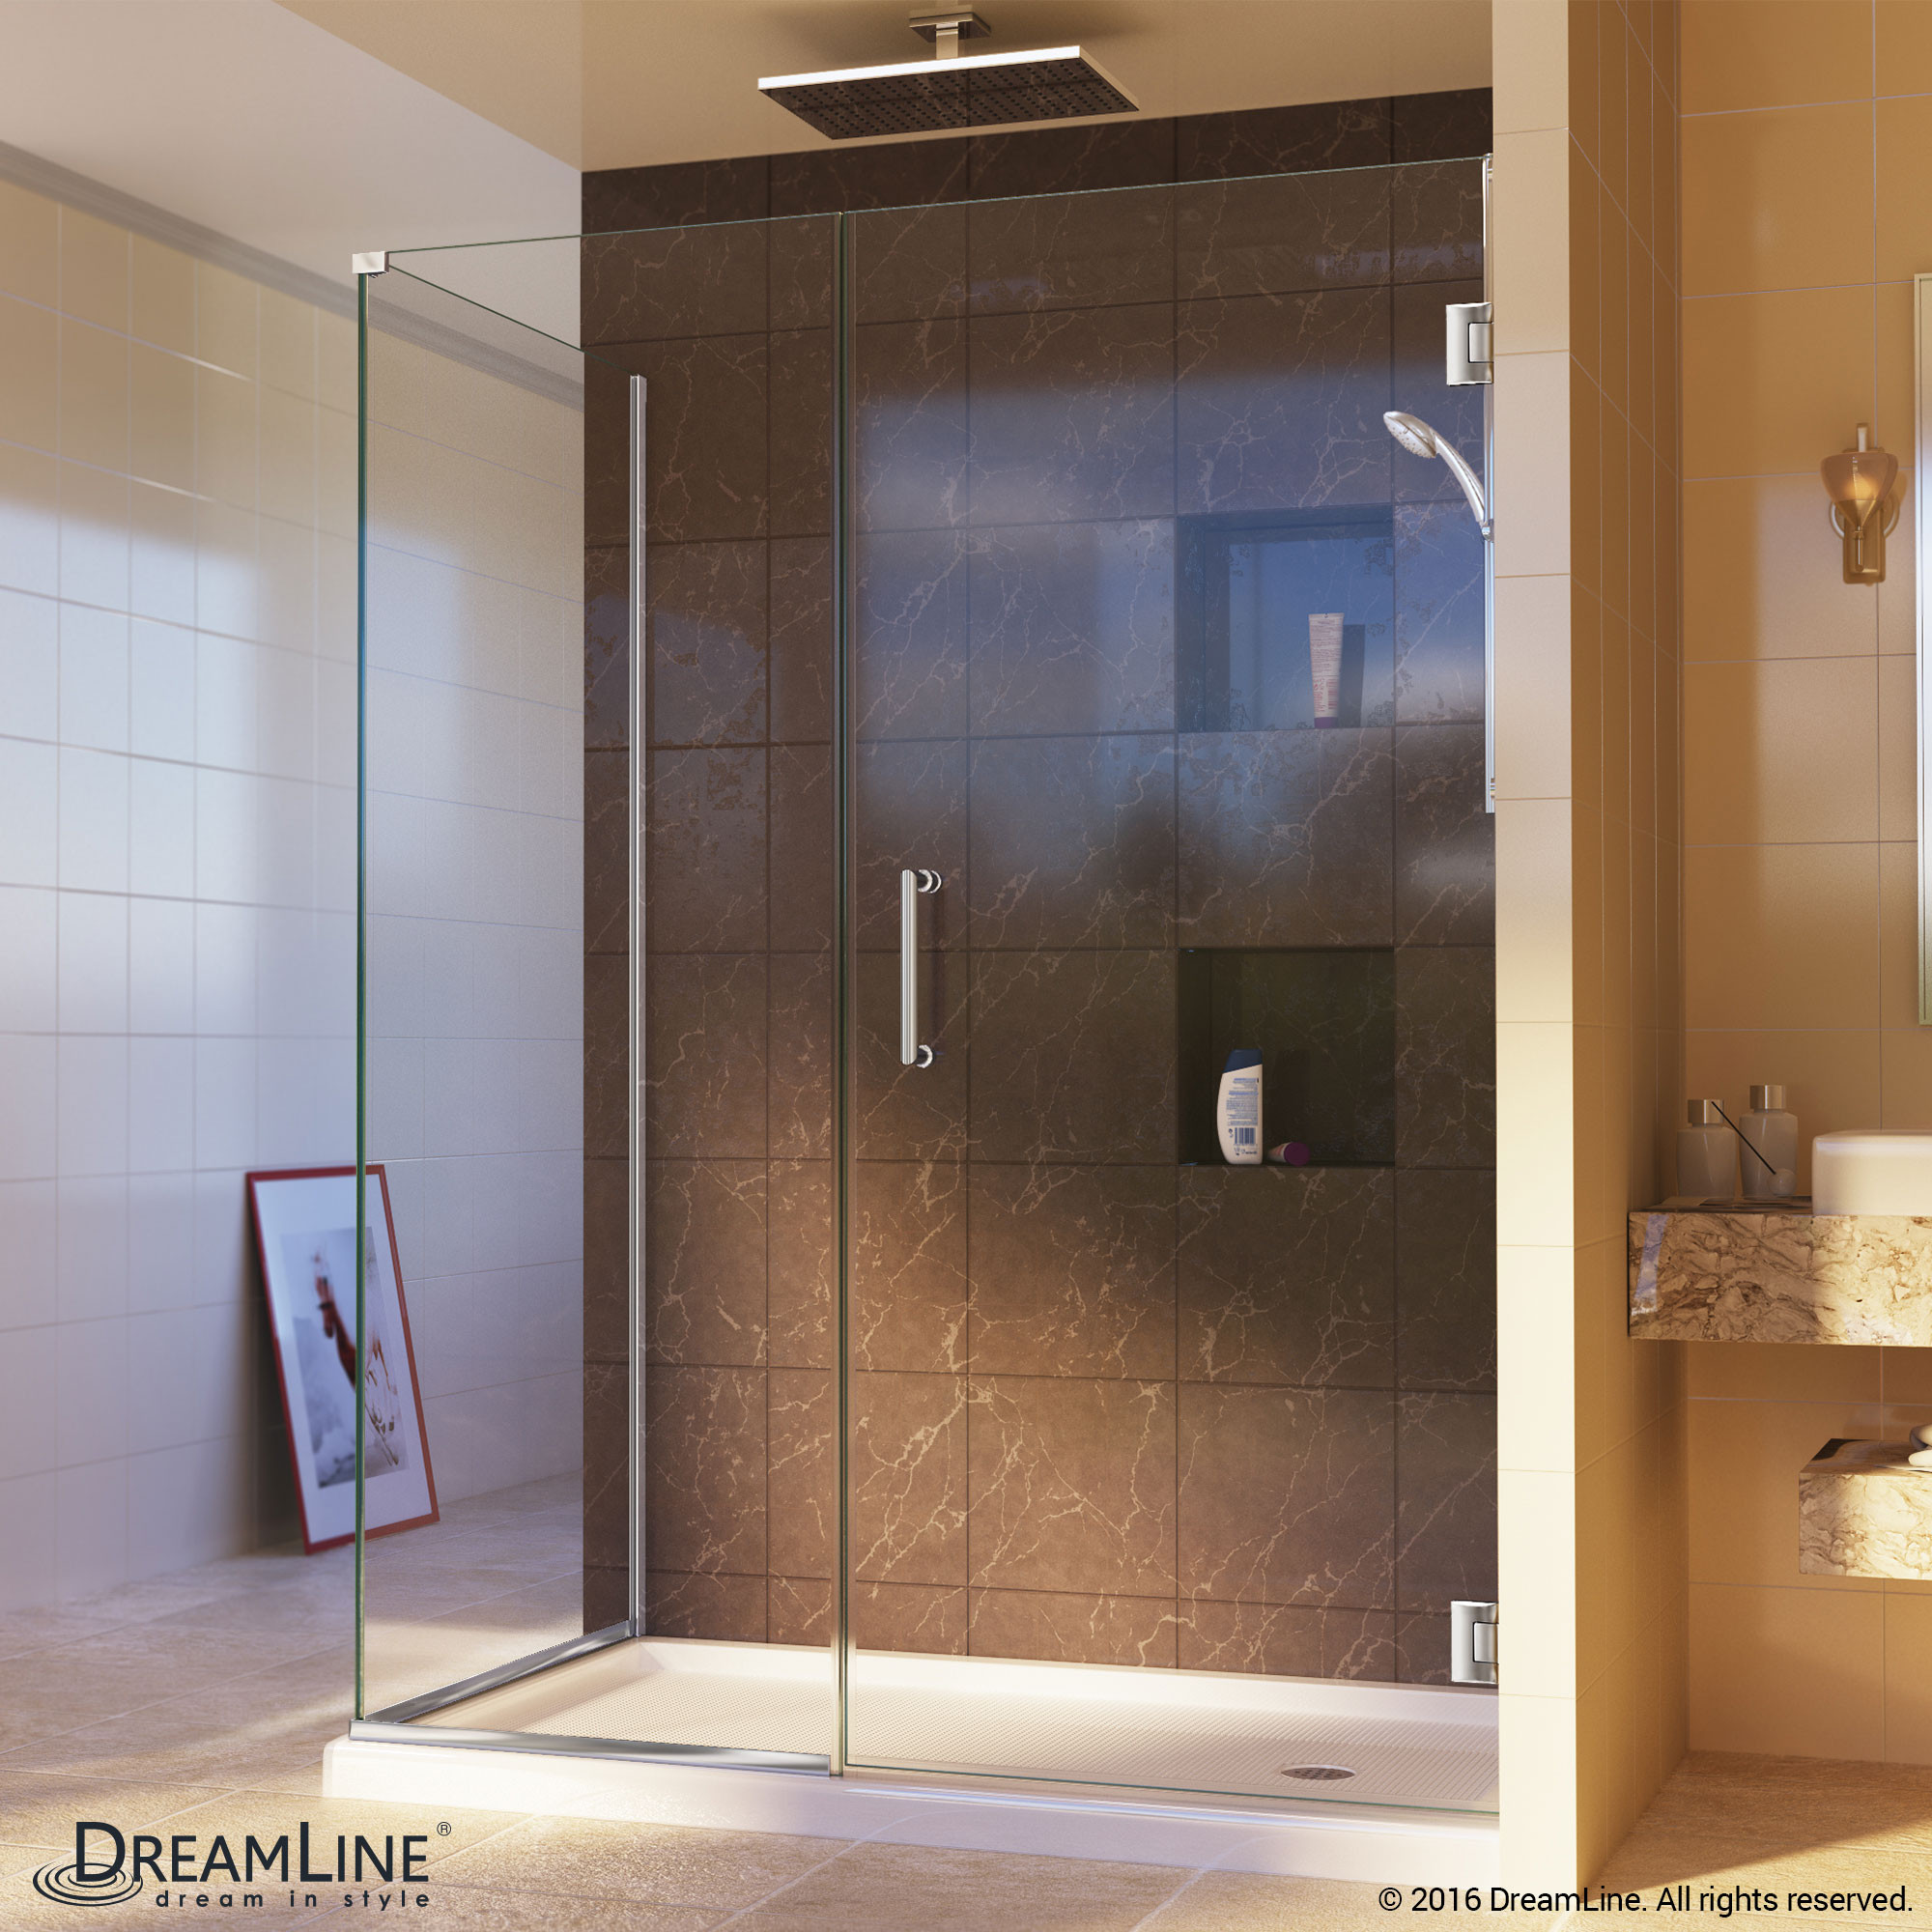 DreamLine SHEN-24485300-01 Unidoor Plus Hinged Shower Enclosure In Chrome Finish Hardware